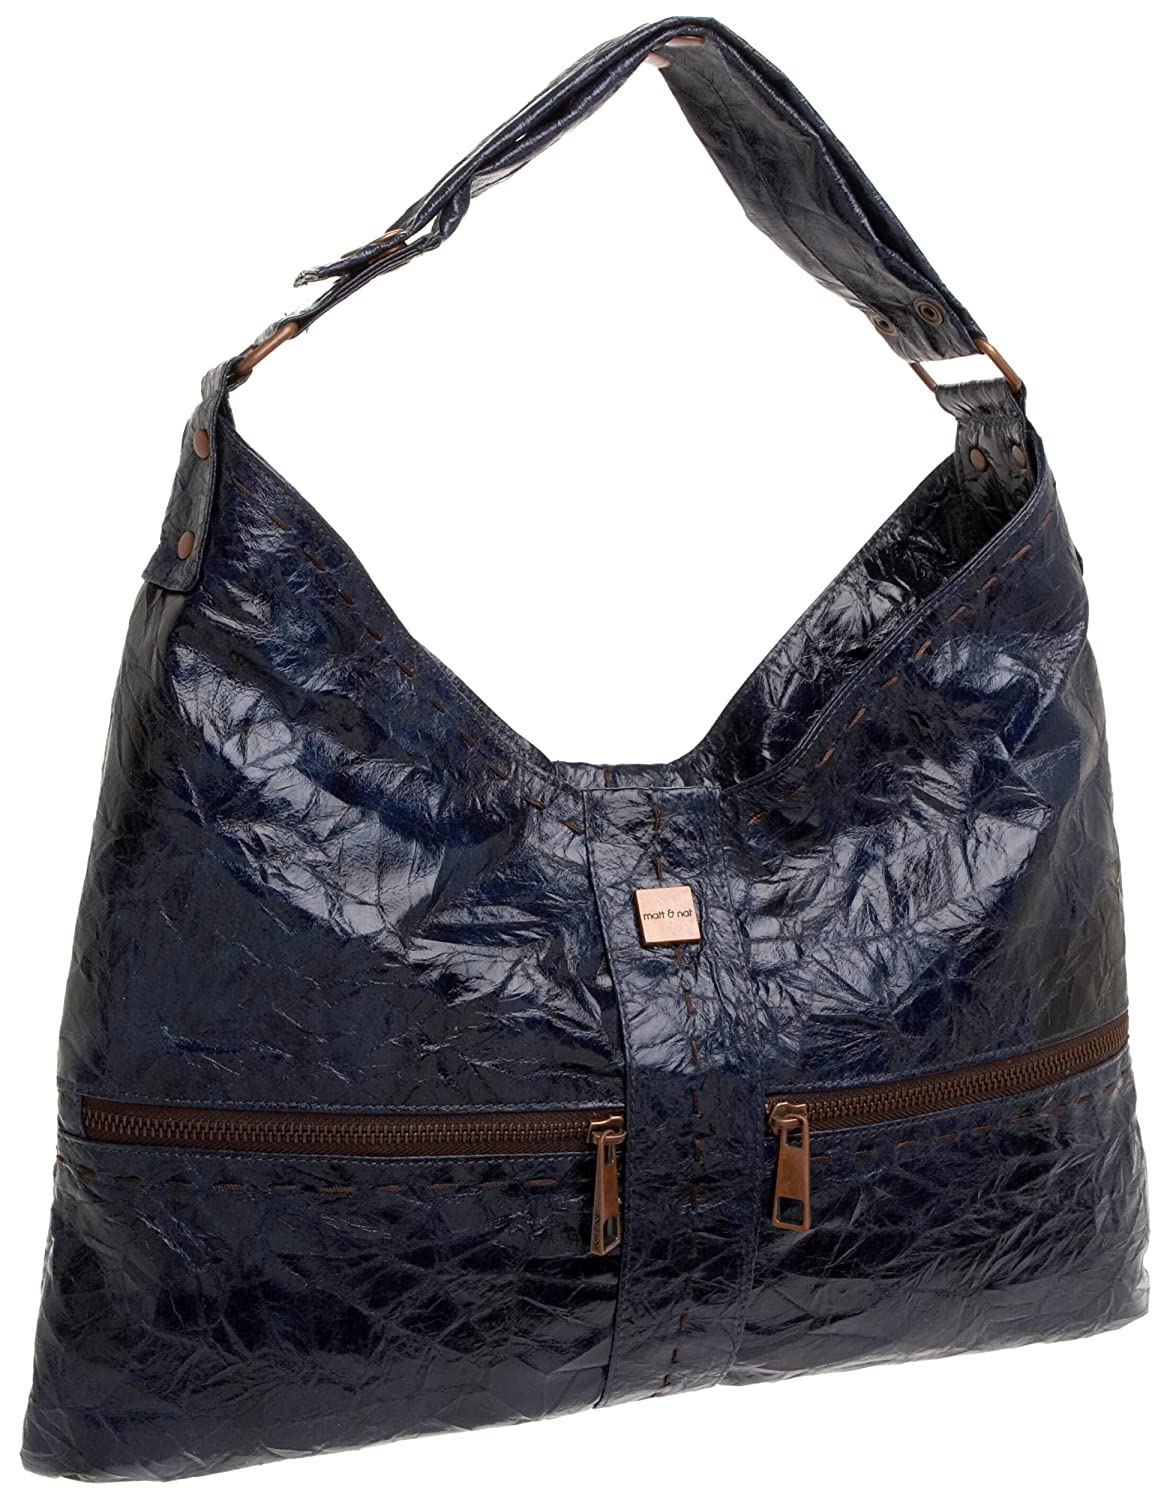 Endless.com: Matt & Nat Vicious Shoulder Bag: Oversized Bags - Free Overnight Shipping & Return Shipping :  designer bags bags hand bags